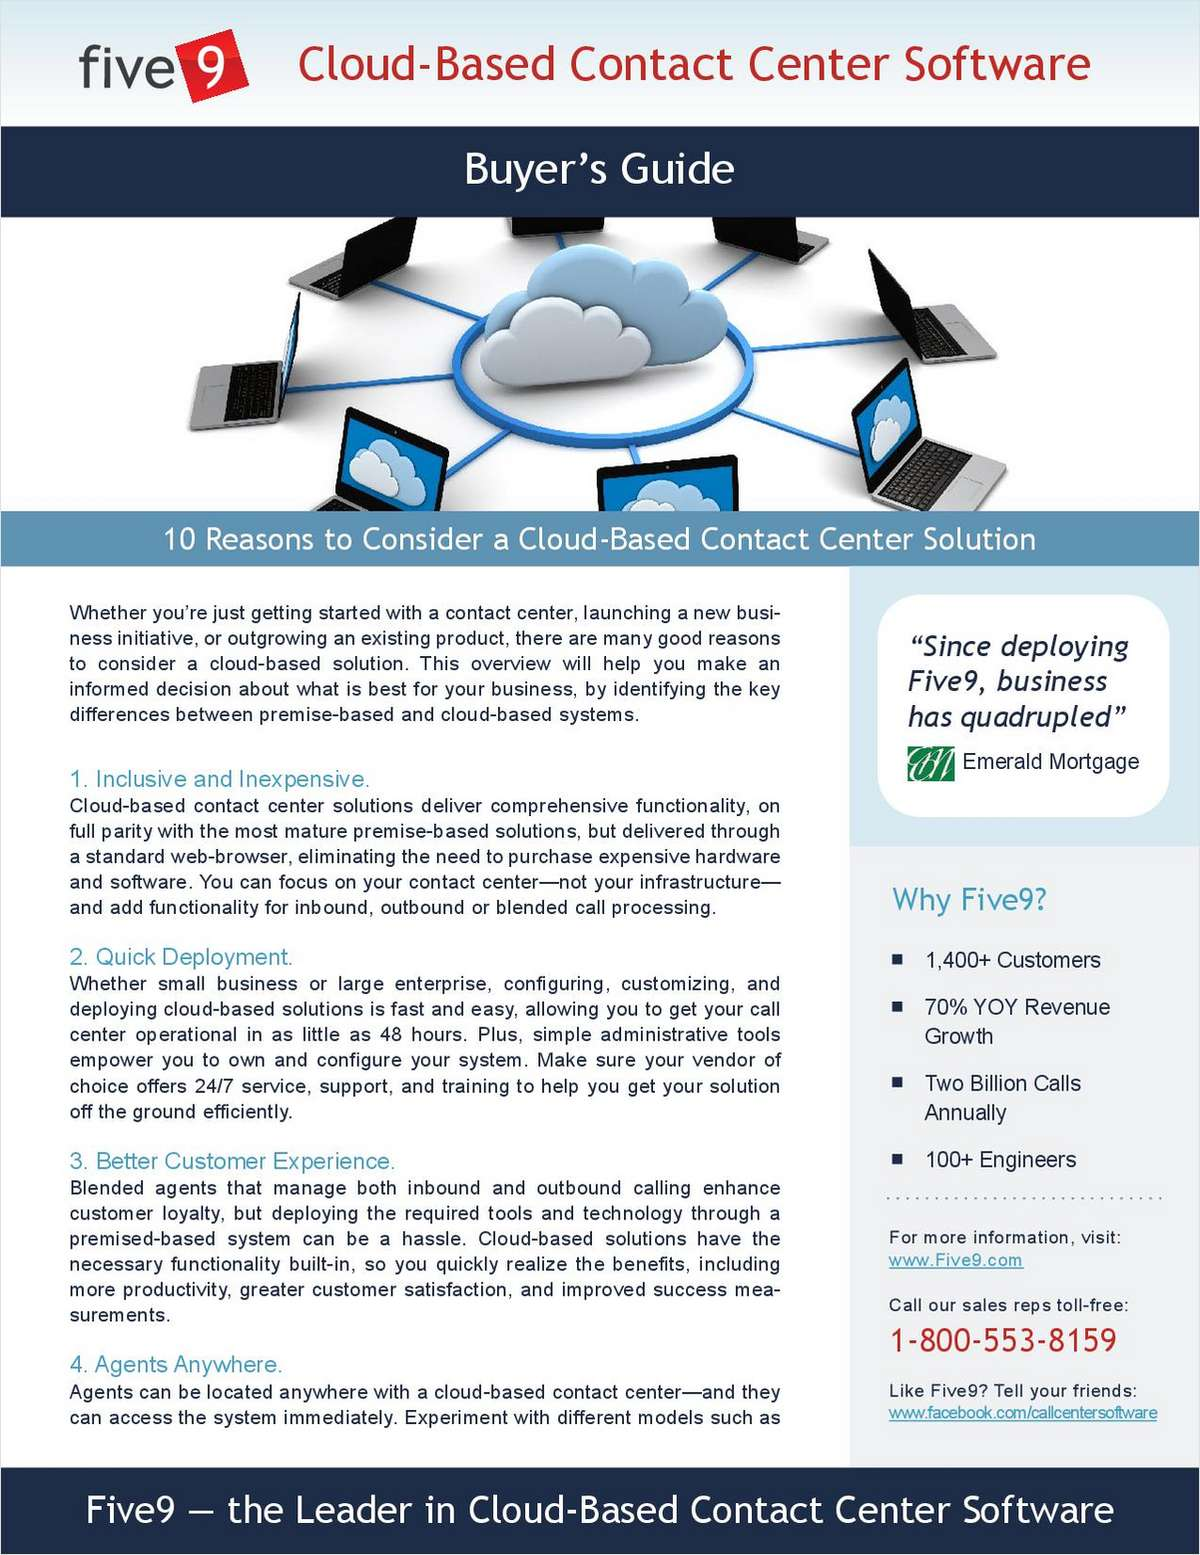 10 Reasons to Consider a Cloud-Based Contact Center Solution